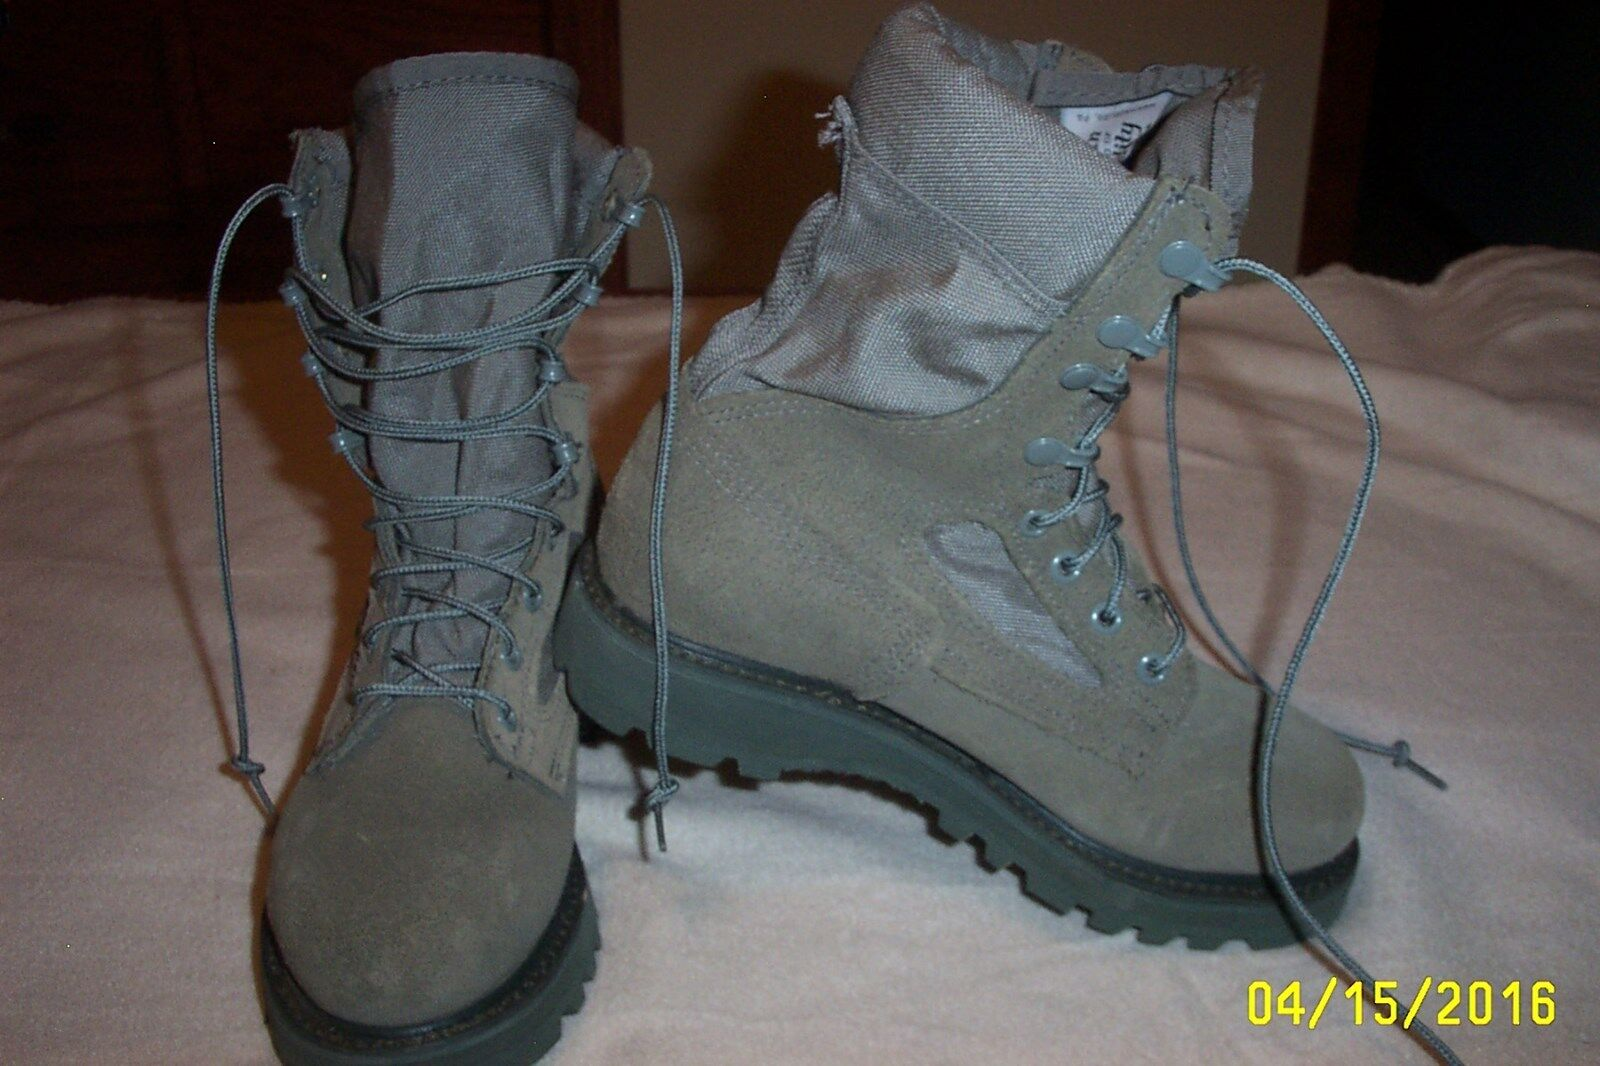 NEW,WOMENS,CORCORAN,MILITARY,6 1 2 M,GREEN SAGE,BOOTS,VIBRAM,MADE IN USA,8705